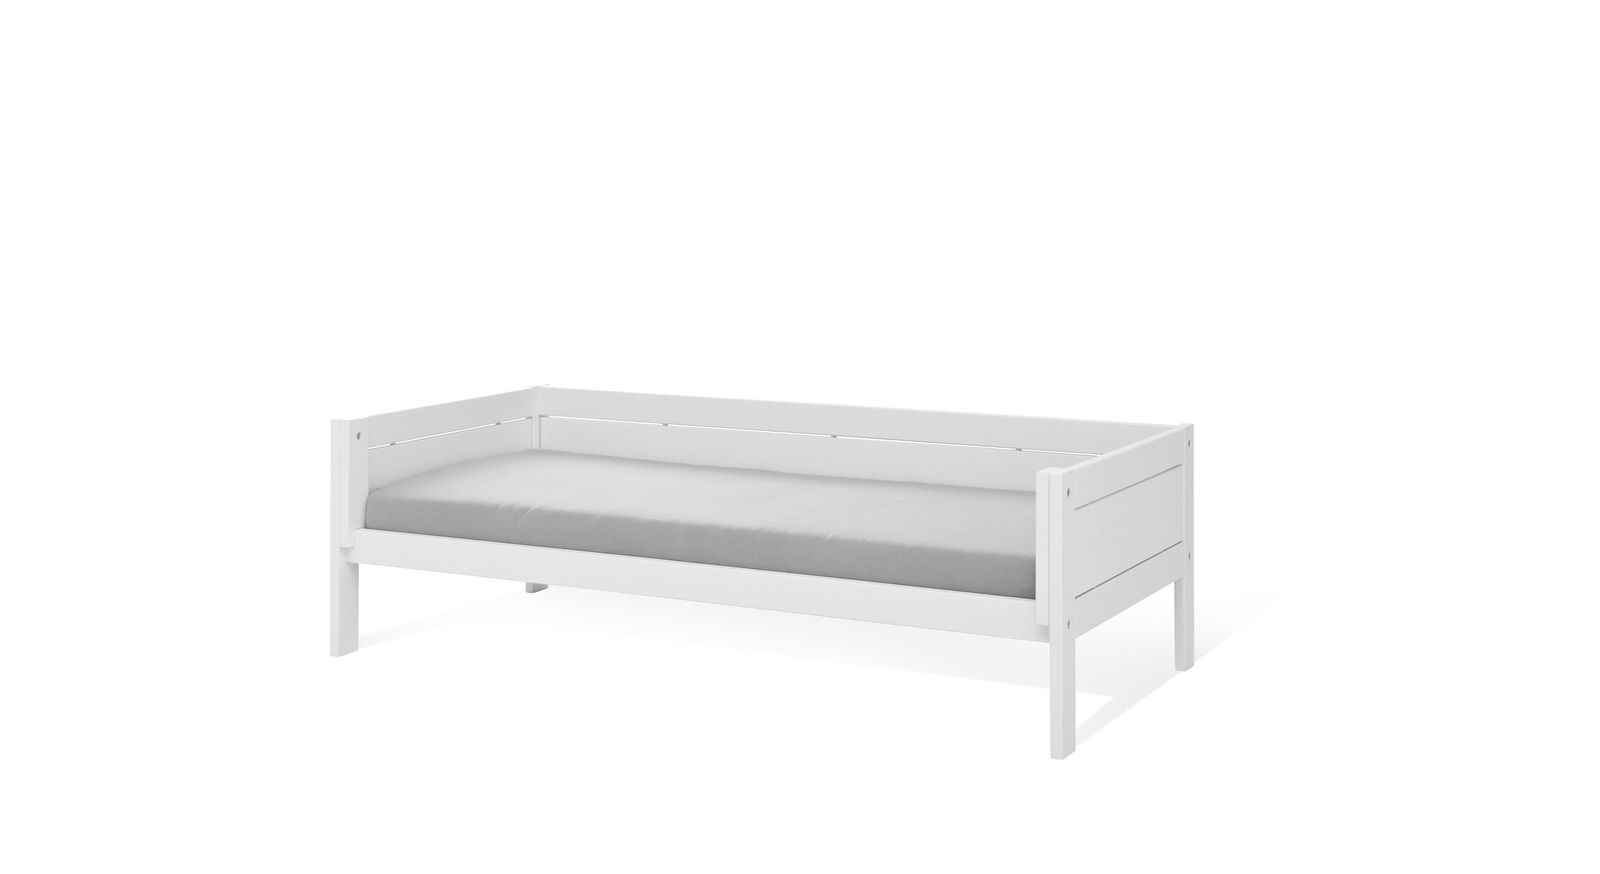 Jugendbett-Variante der 4-in-1 LIFETIME Kinderbetten